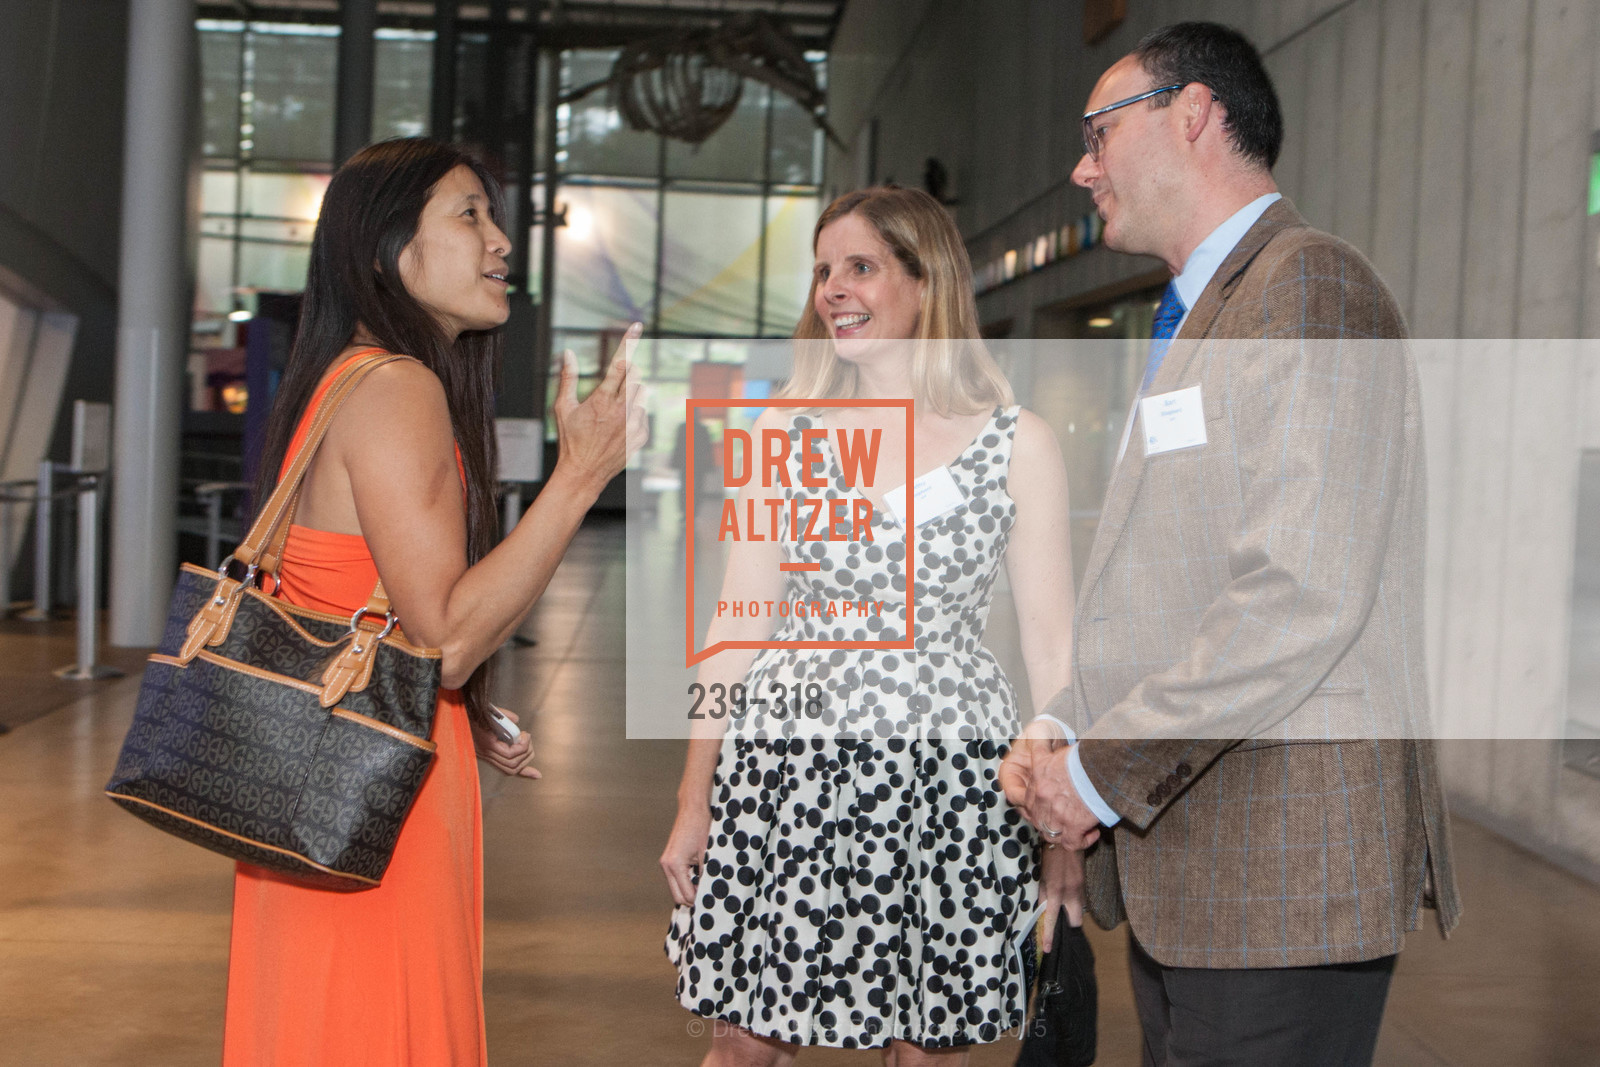 Alice Ng, Kathy Shepherd, Bart Shepherd, Coral Reef Alliance at the California Academy of Sciences, Academy of Sciences, September 26th, 2015,Drew Altizer, Drew Altizer Photography, full-service agency, private events, San Francisco photographer, photographer california